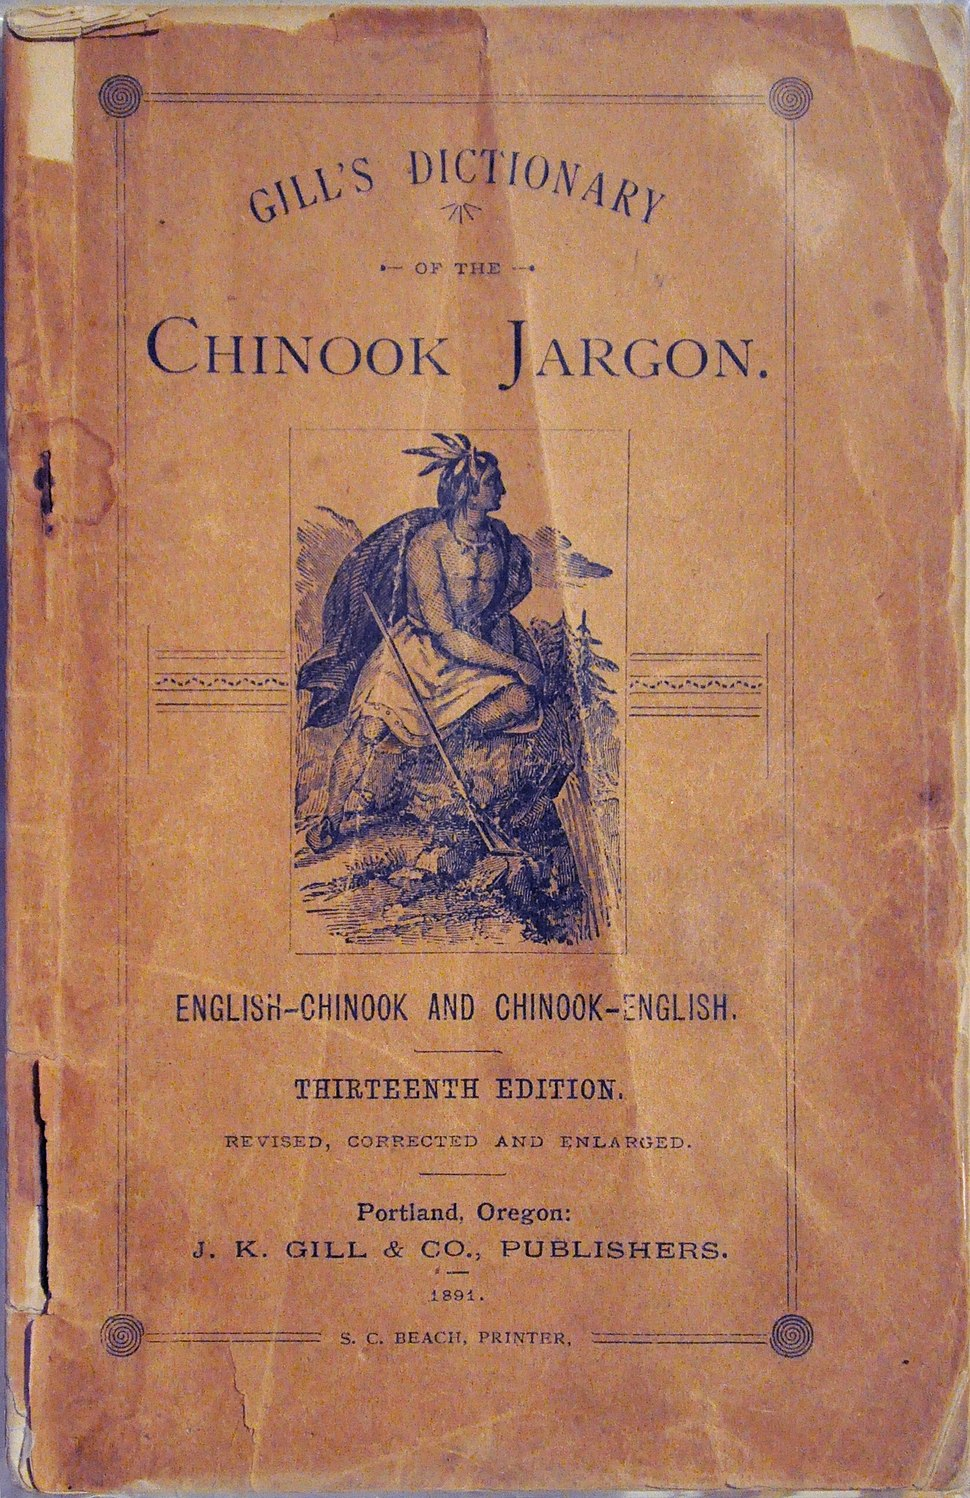 Gill's Dictionary of the Chinook Jargon 01B